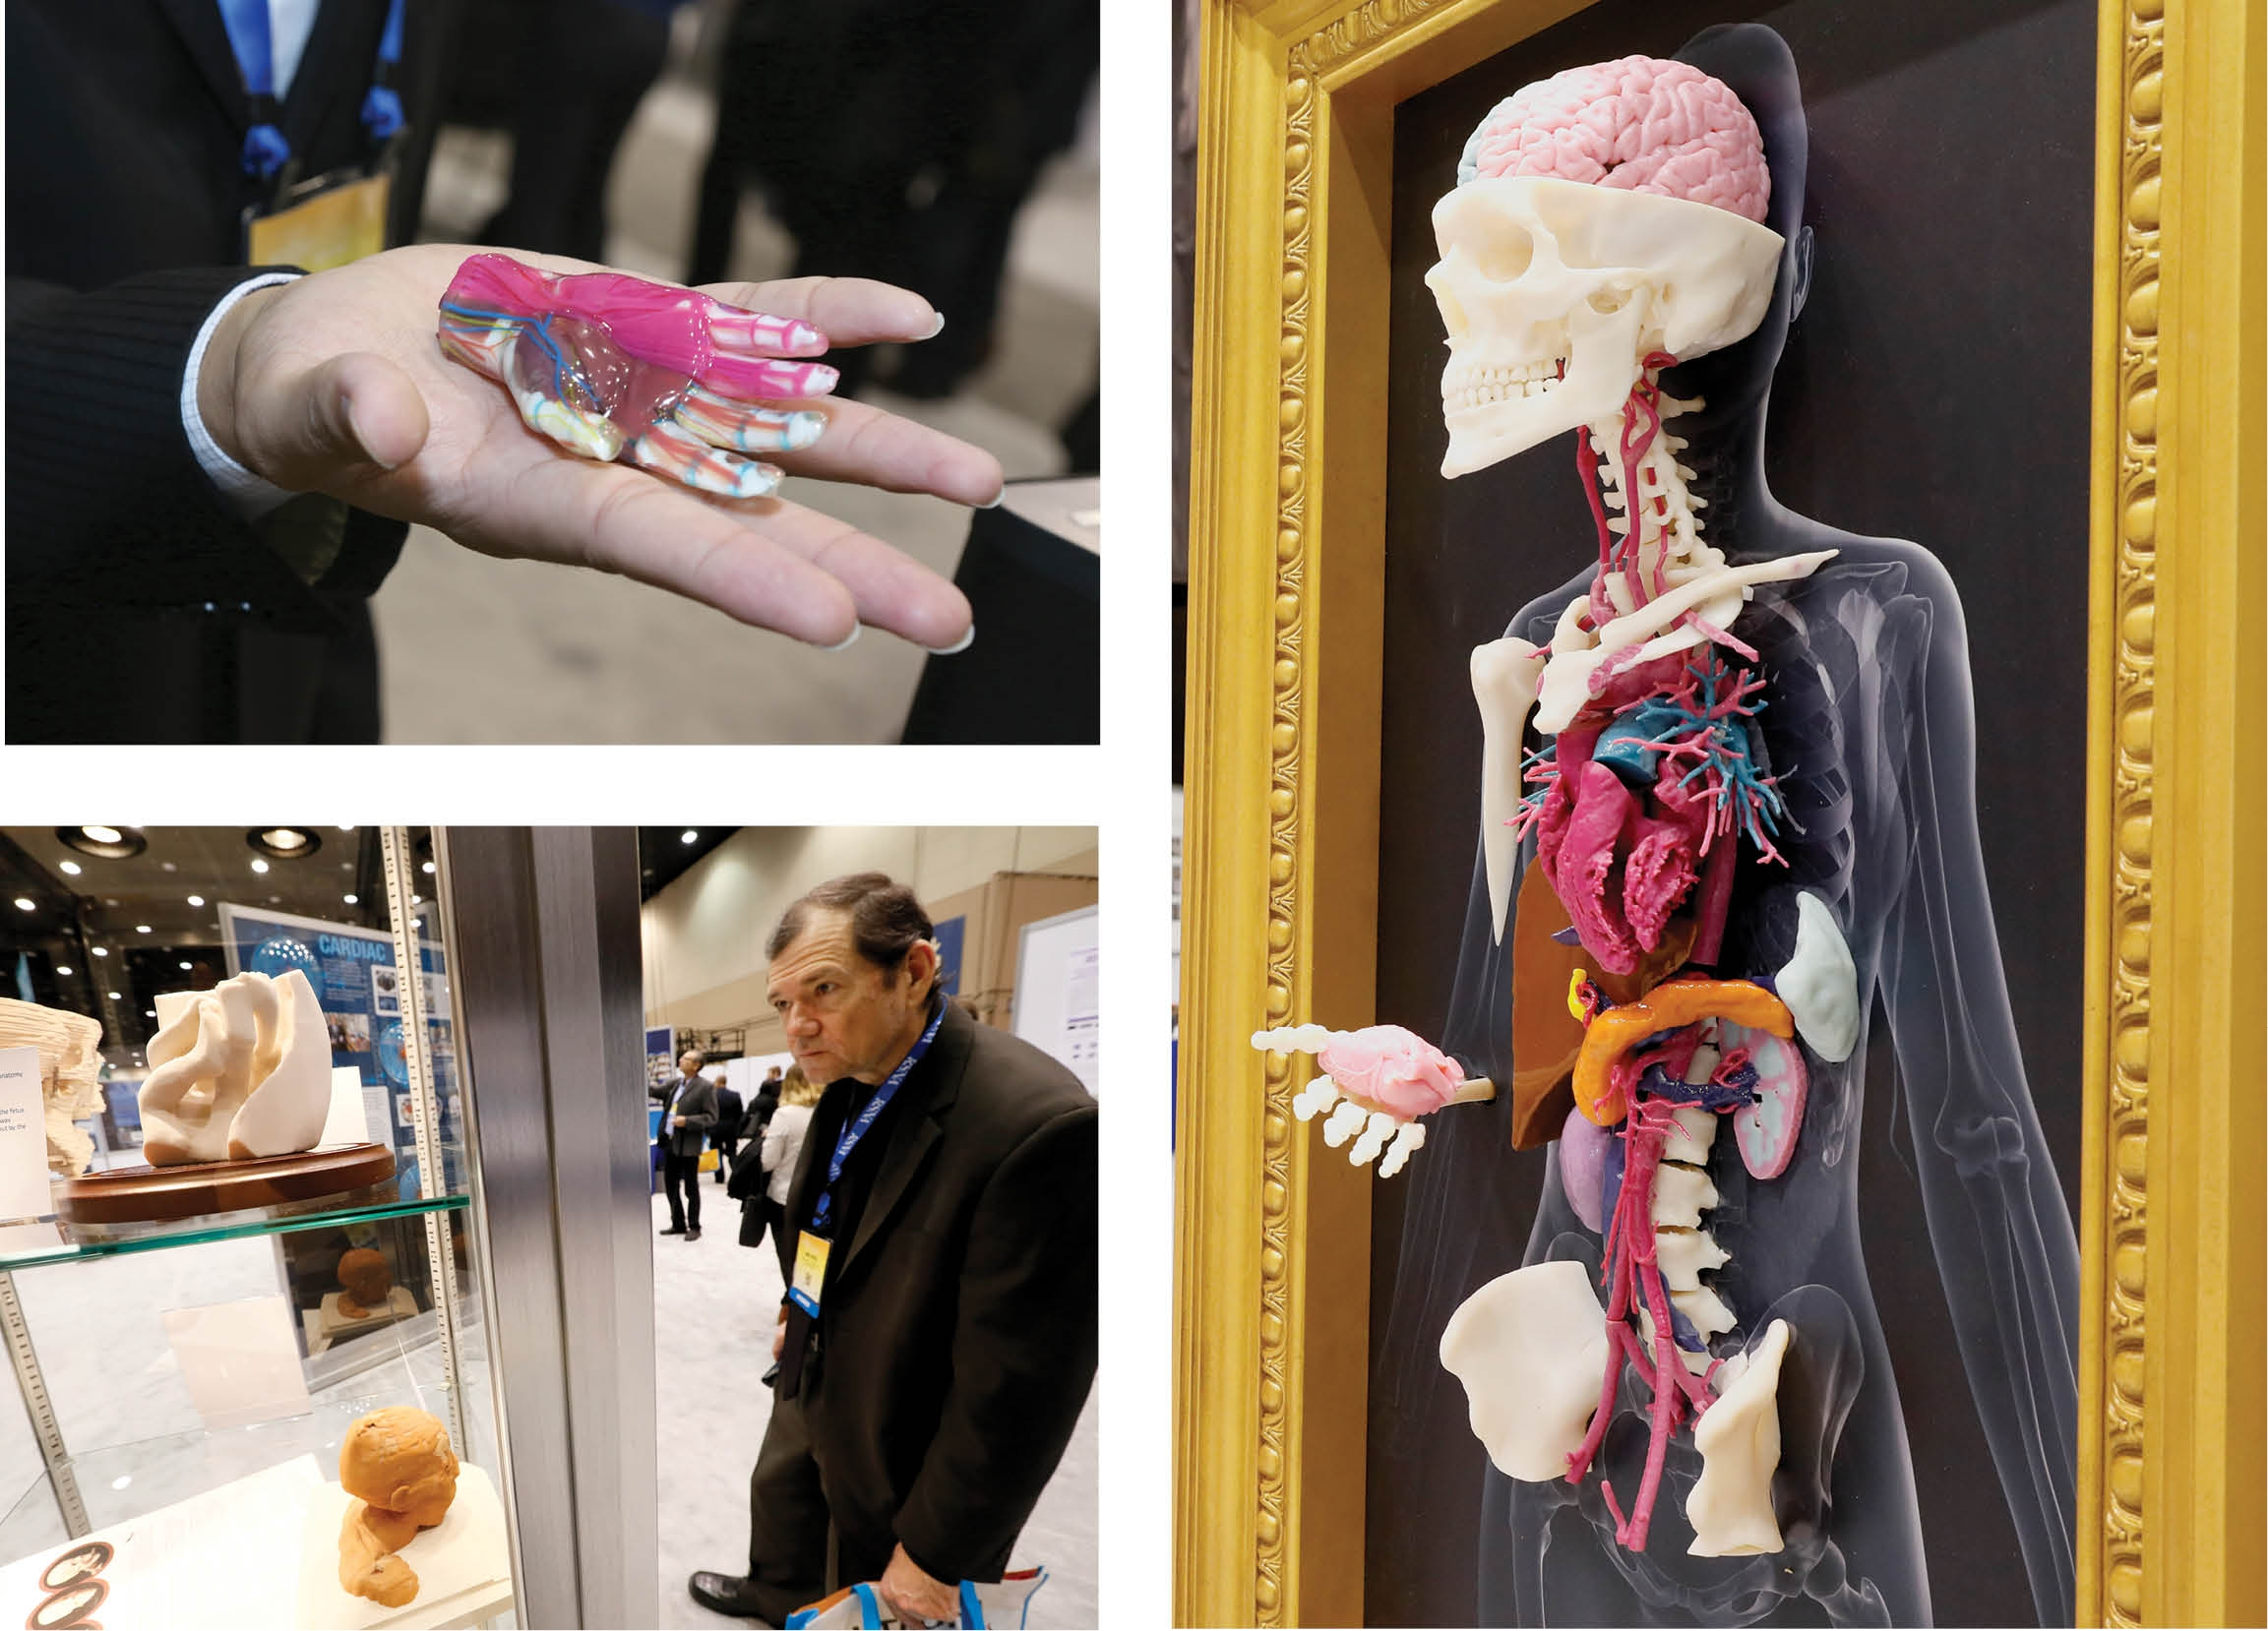 The 3-D Printing in Medicine exhibit at RSNA 2016